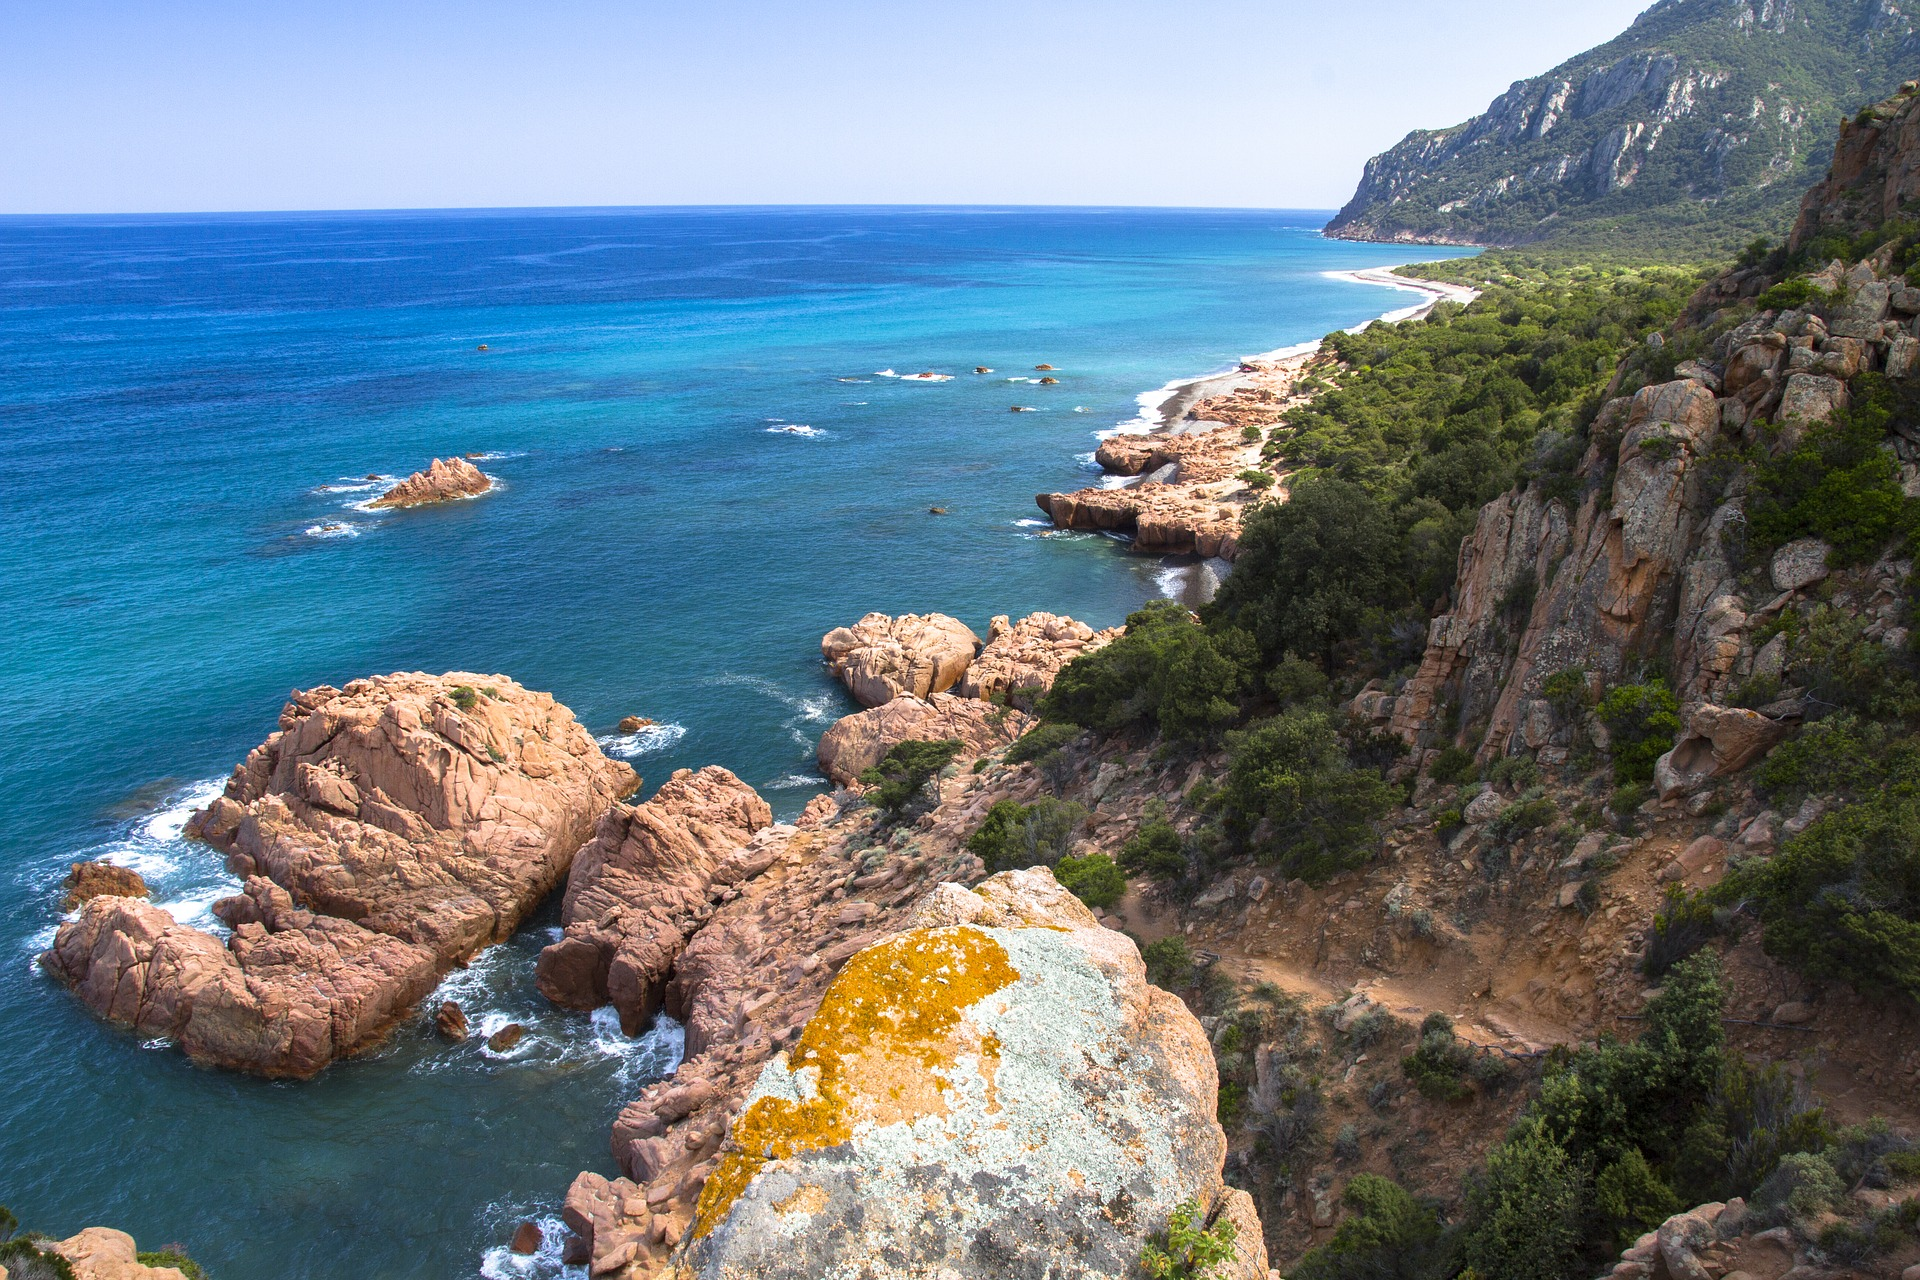 Longevity tips from Sardinia